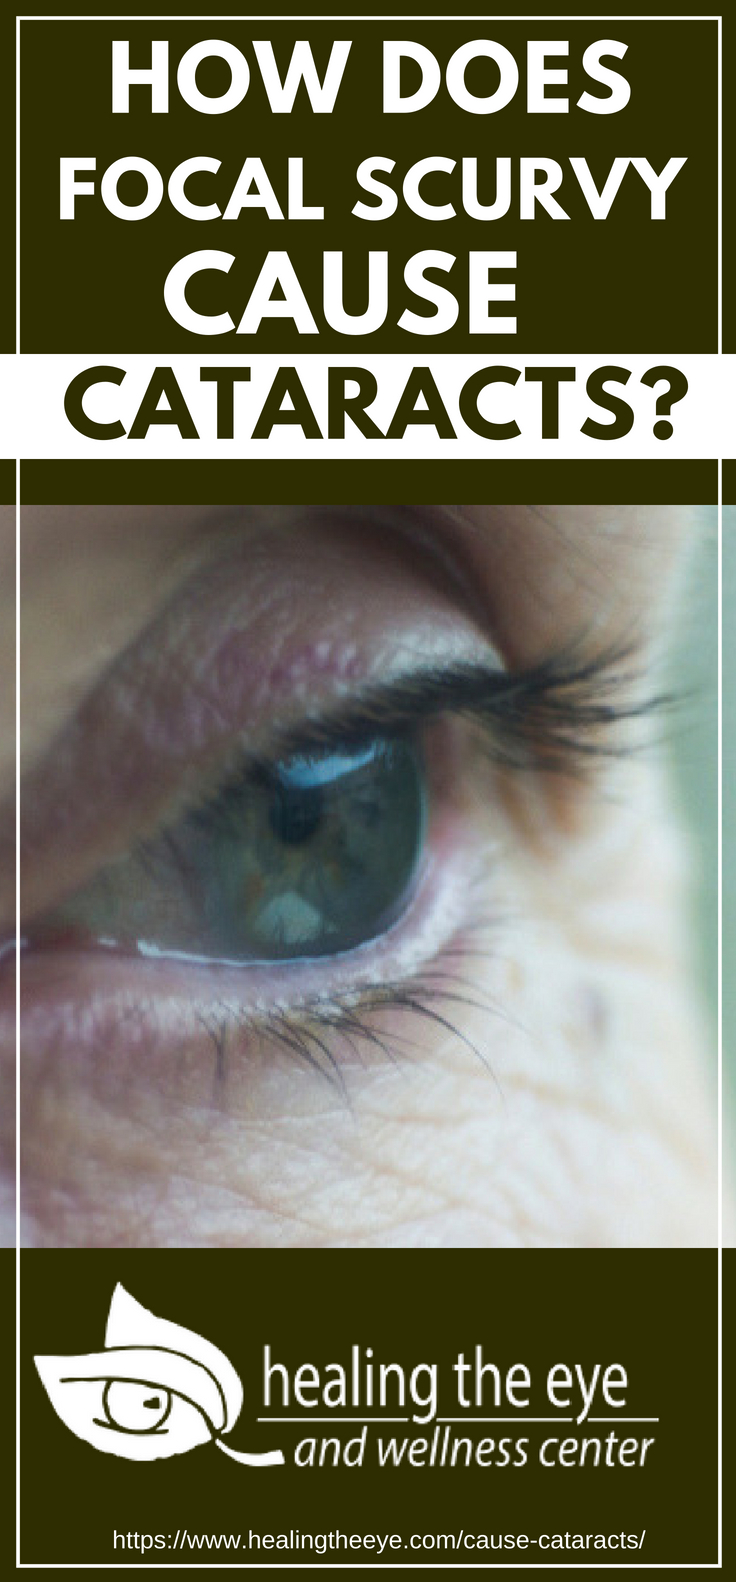 How Does Focal Scurvy Cause Cataracts?